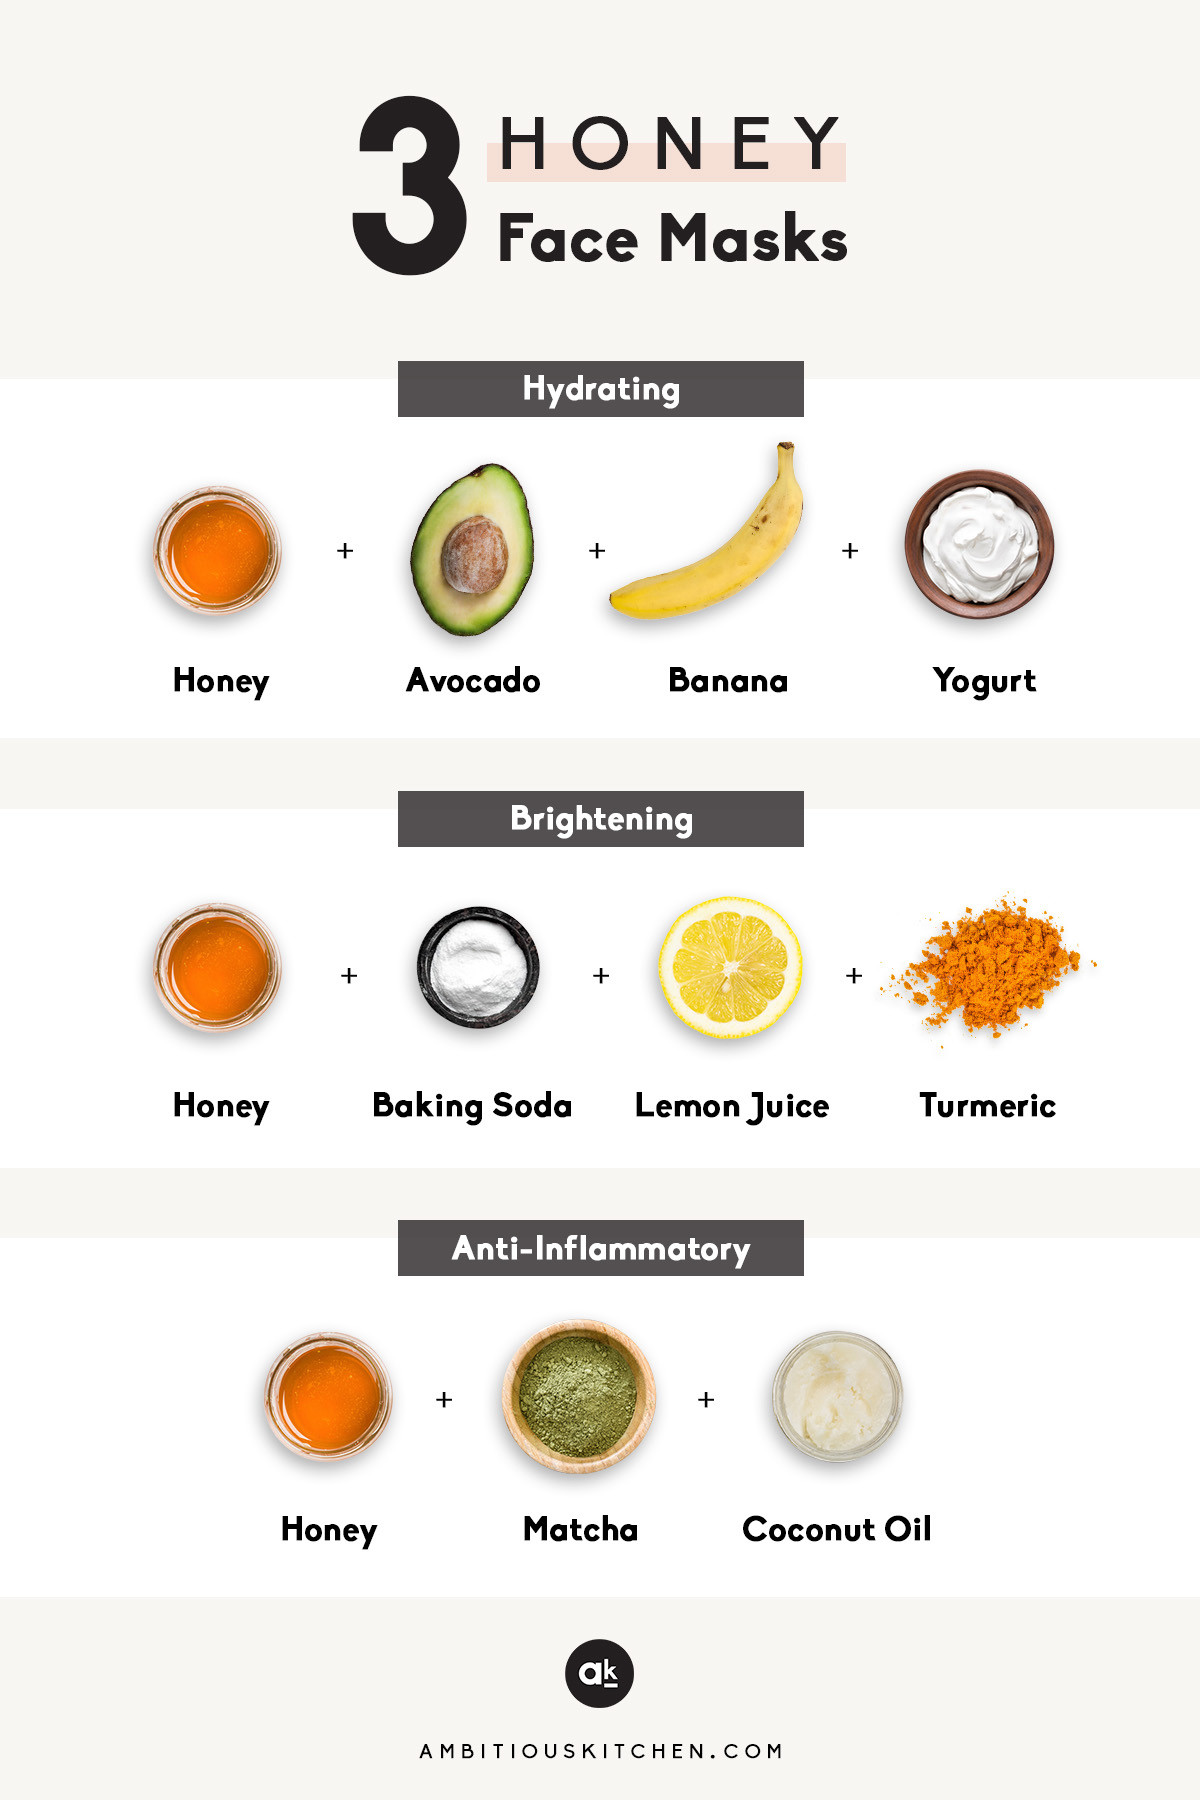 Best ideas about DIY Face Mask . Save or Pin 3 DIY Honey Face Masks video Now.